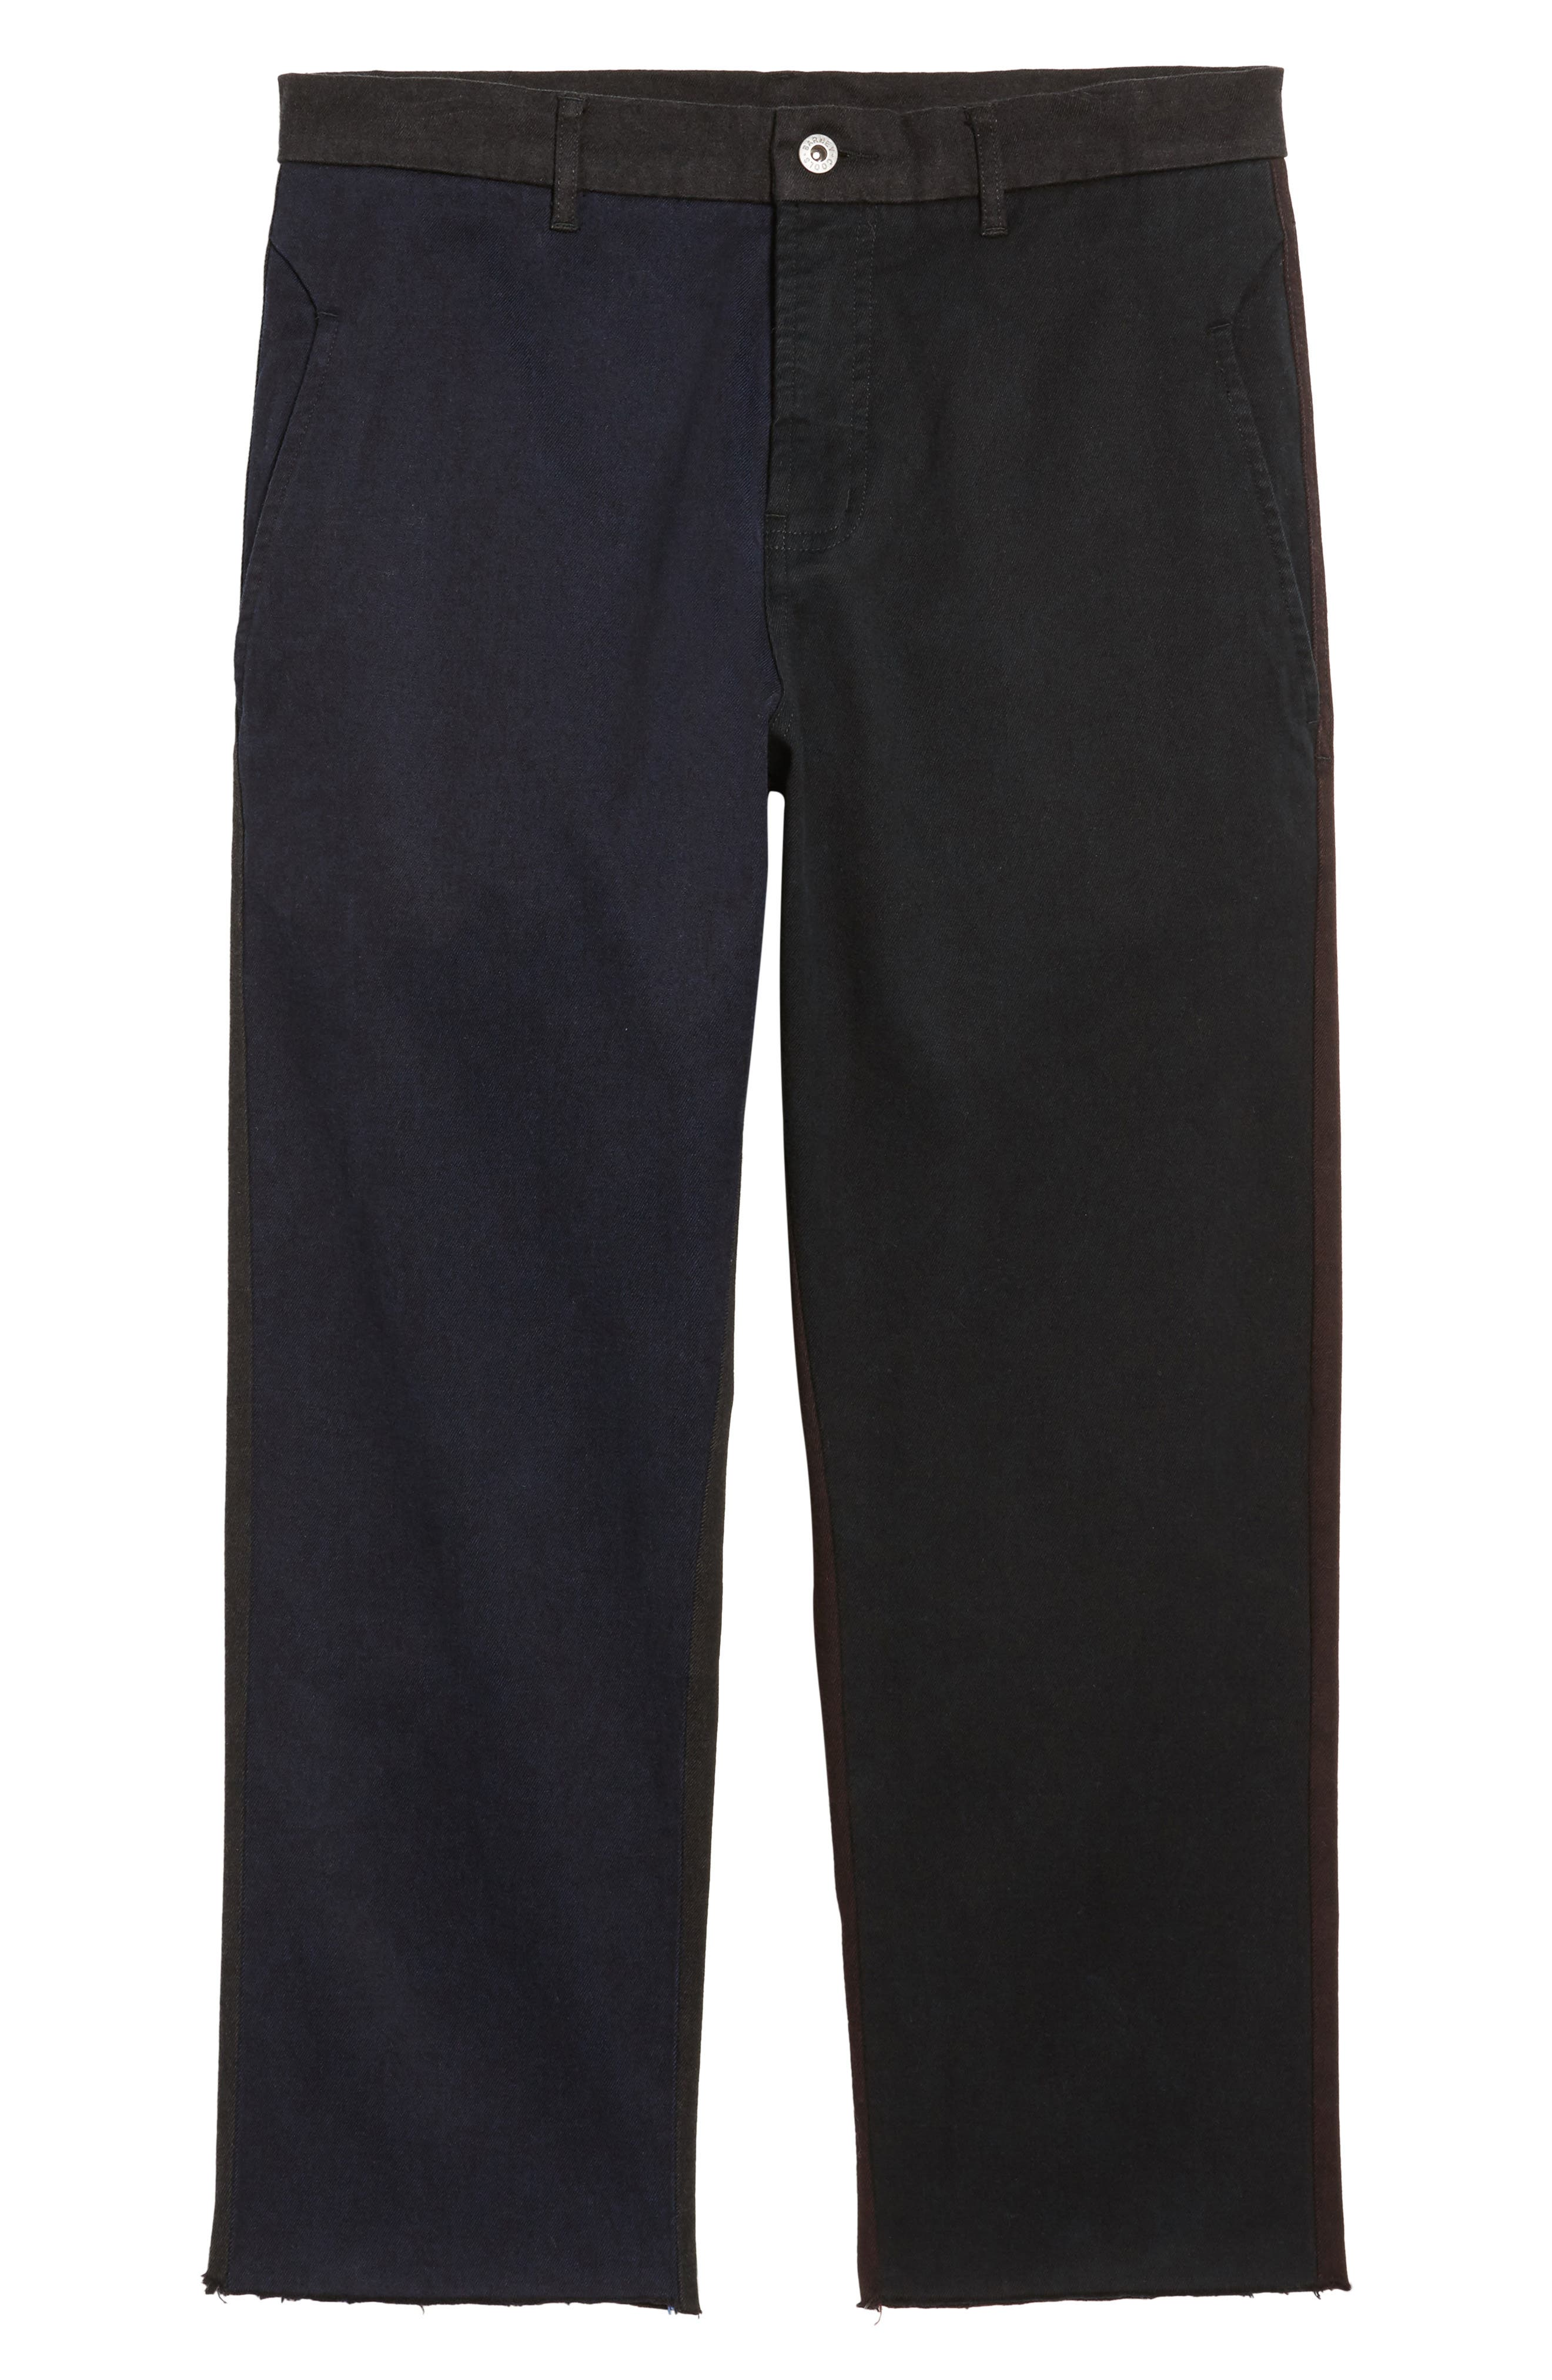 Chodus Crop Boxy Fit Chinos,                             Alternate thumbnail 6, color,                             001